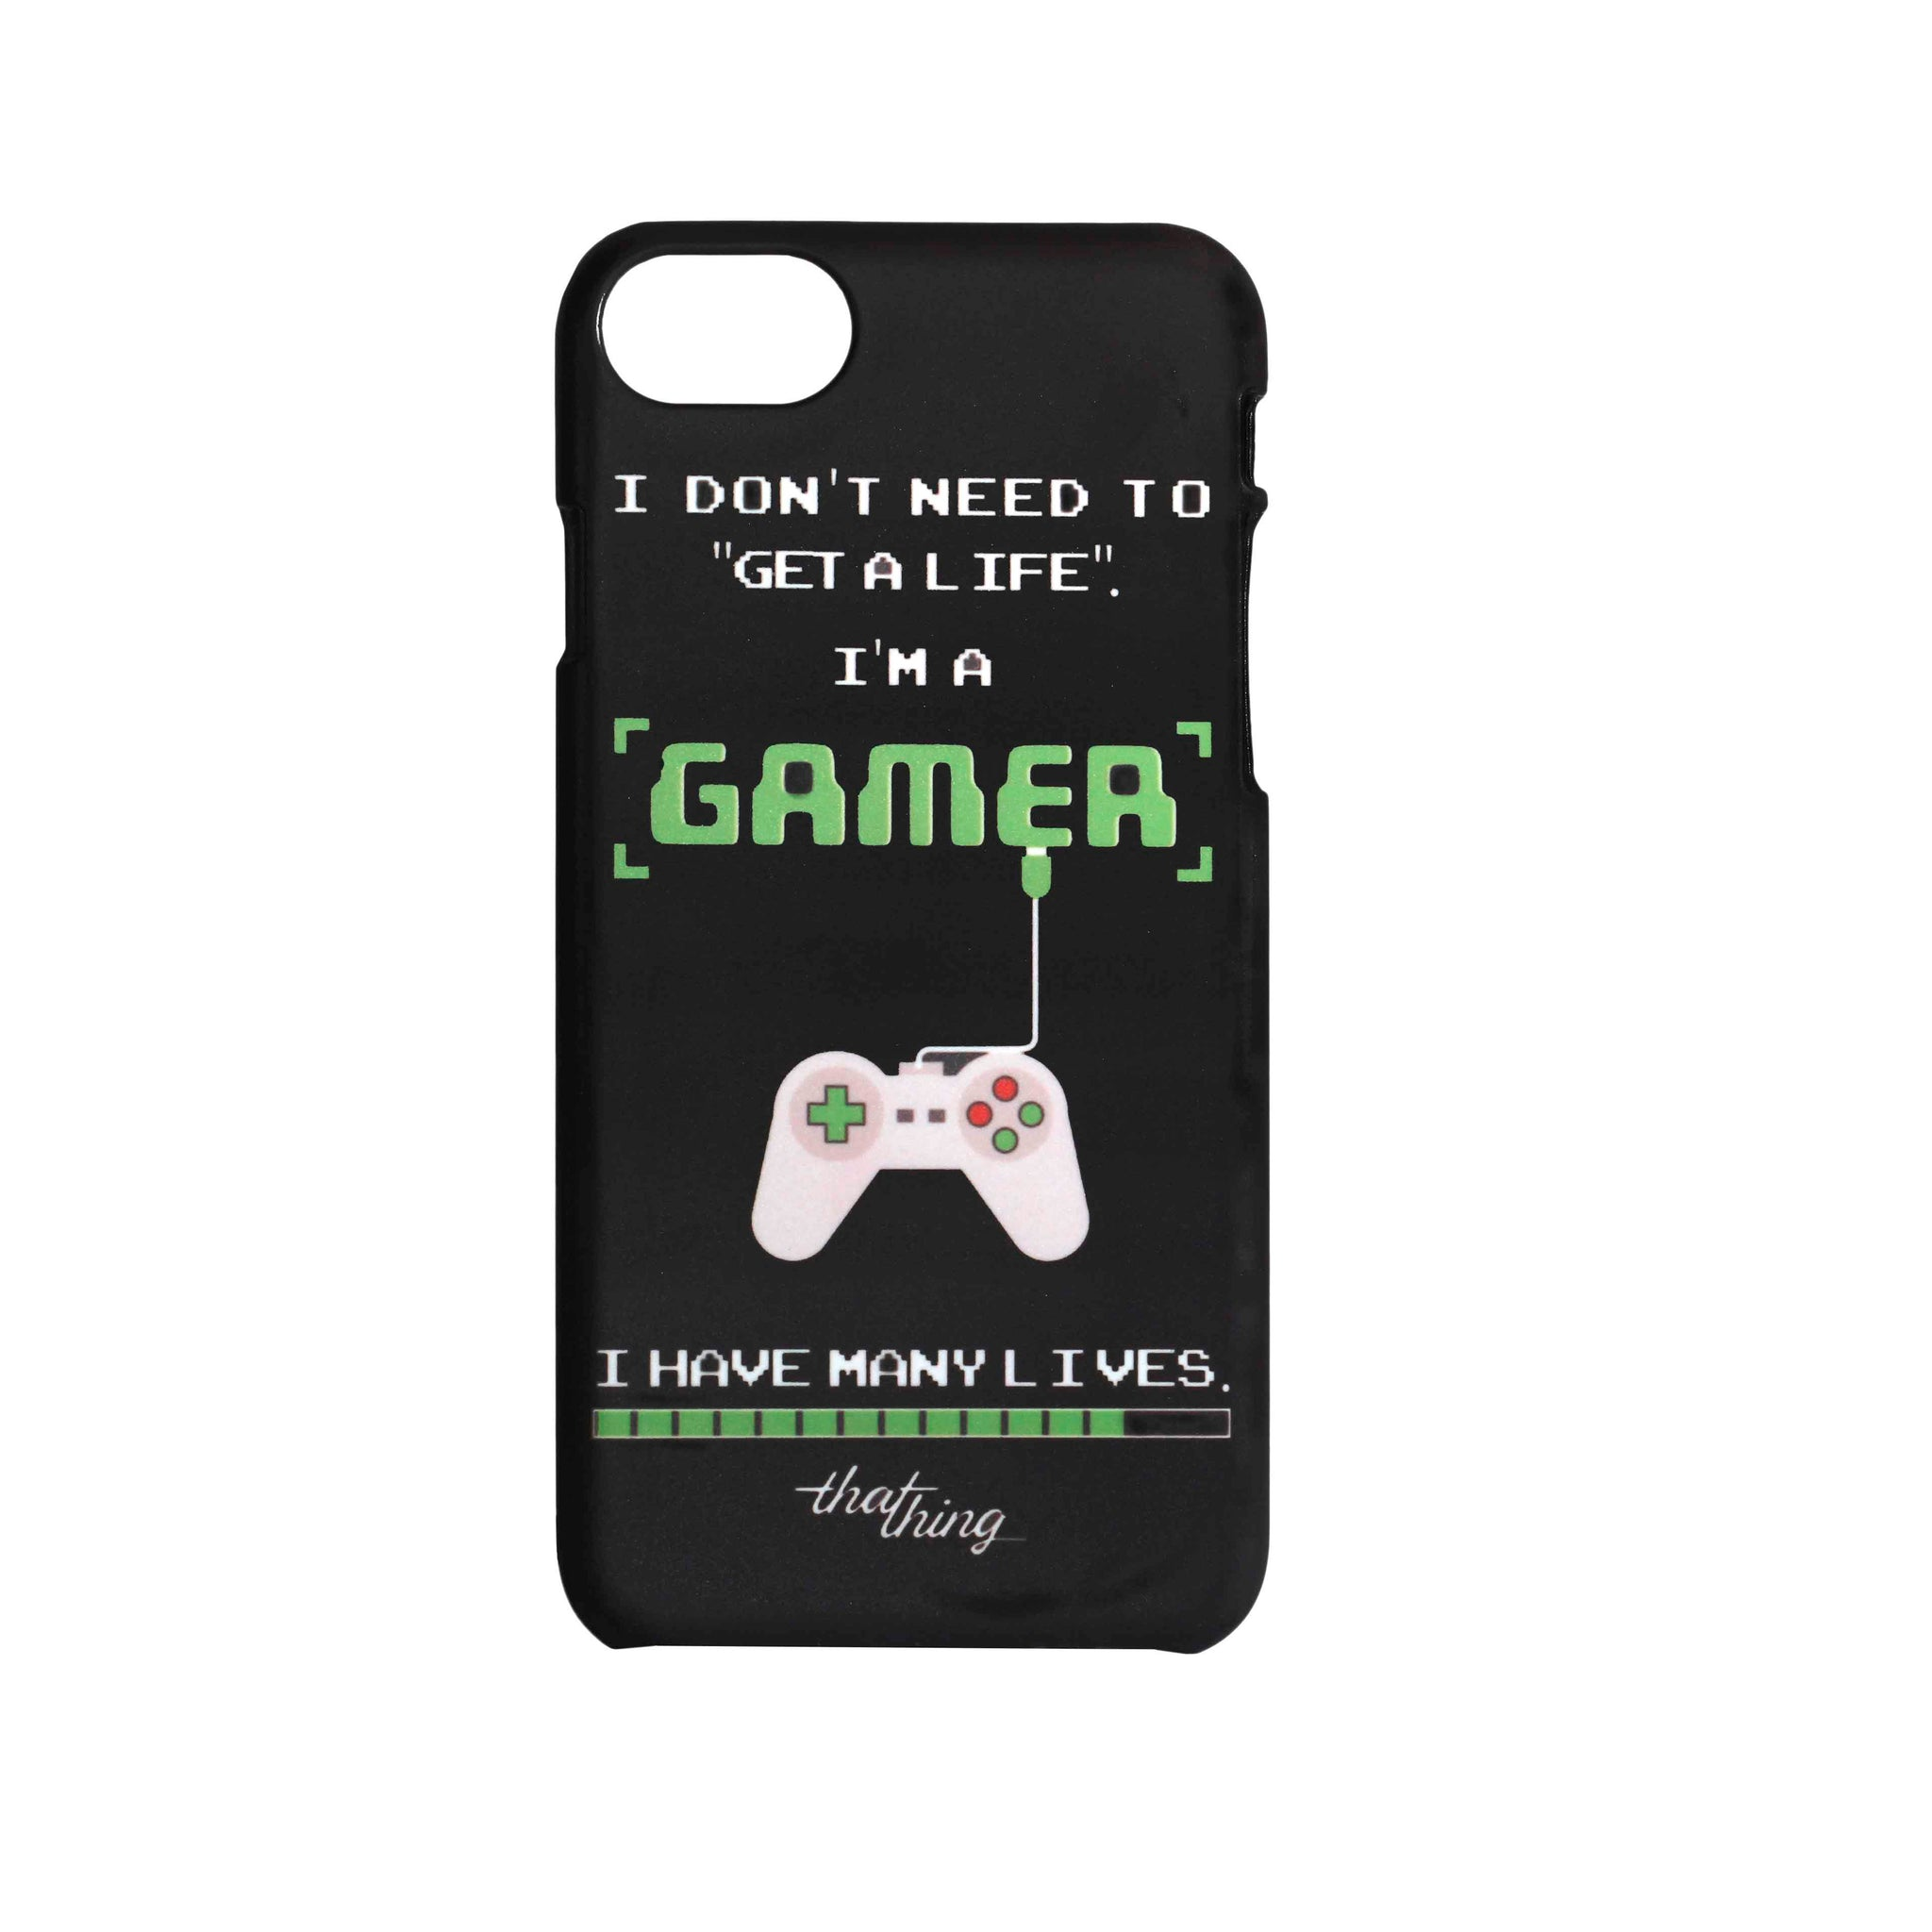 I'm a Gamer Phone Cover